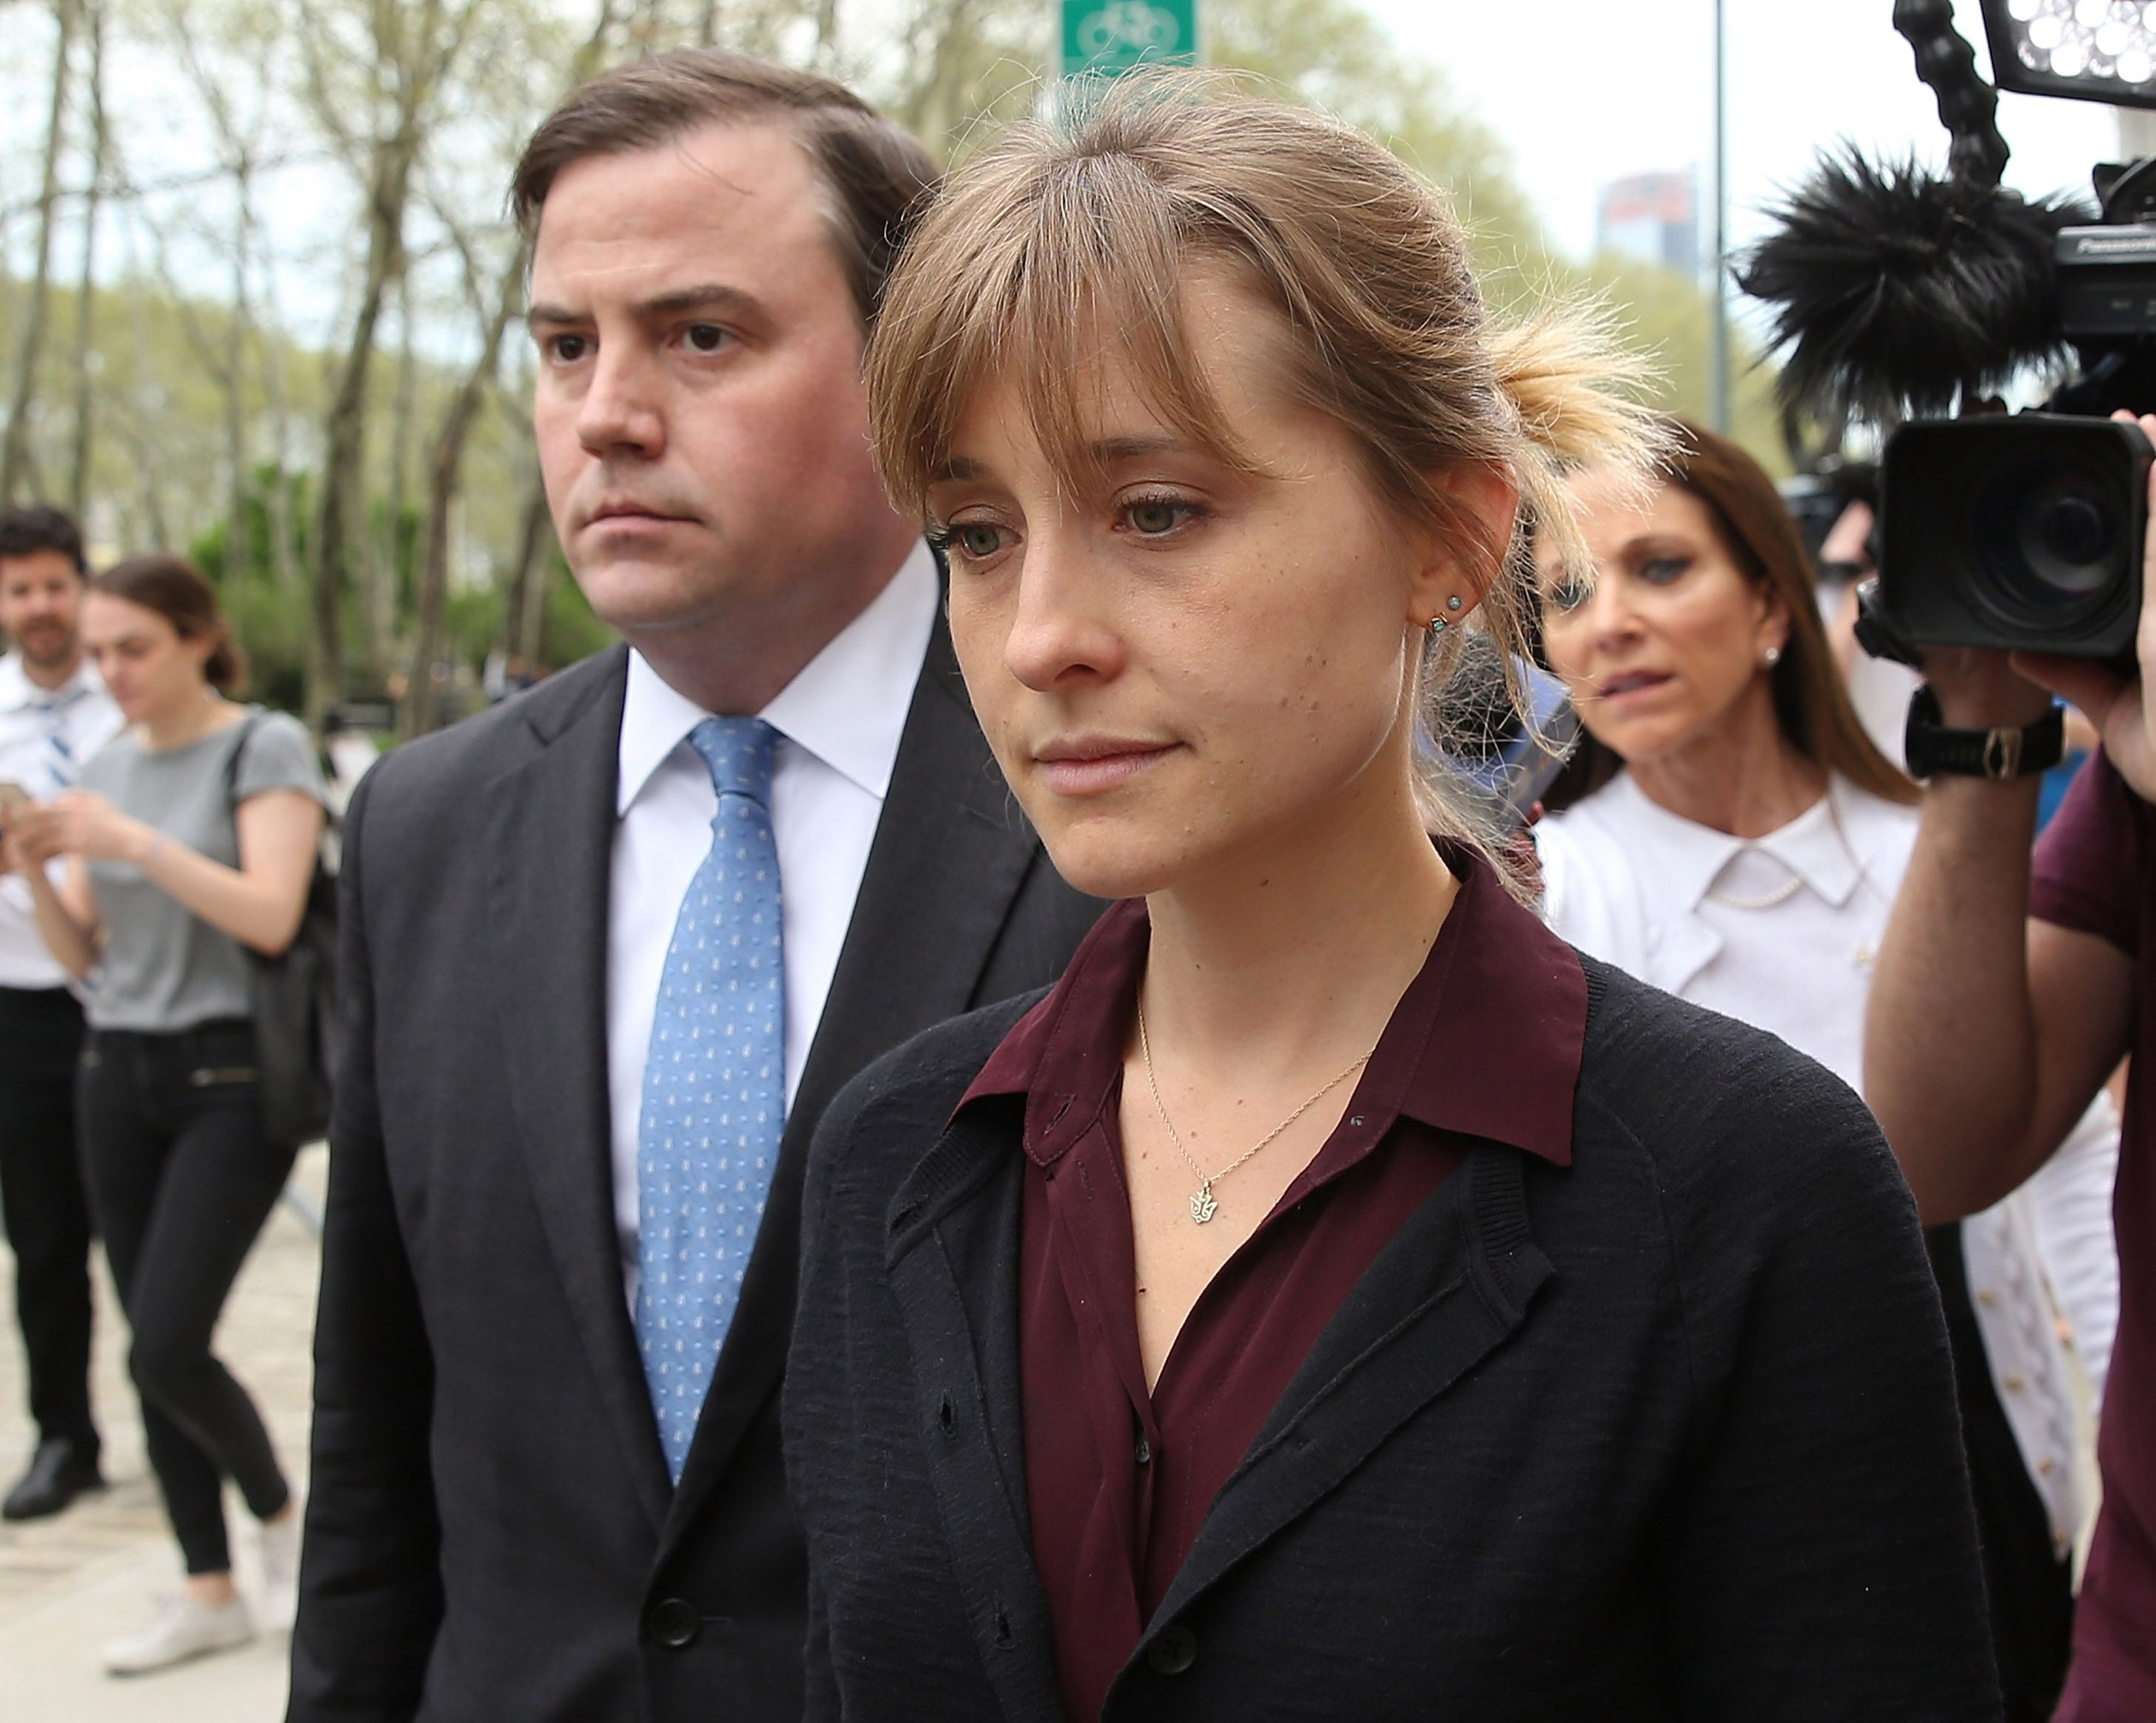 Allison Mack Sentenced to Prison For Her NXIVM Charges in 2021